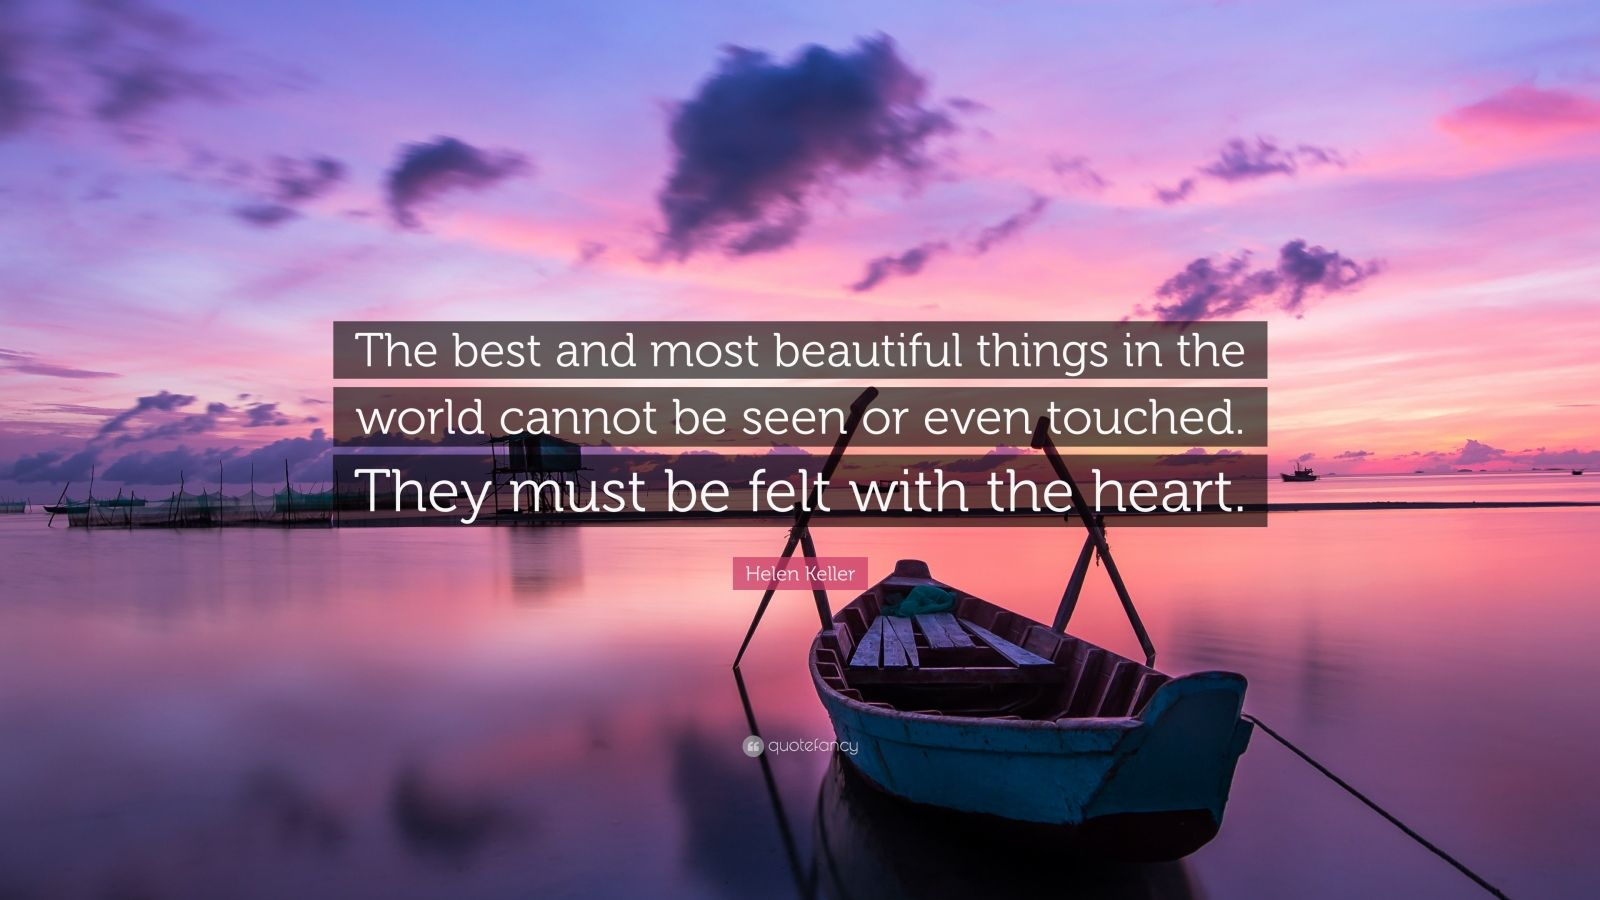 14 Beautiful Life Quotes and Sayings (Enjoy Life's Beauty) |Quotes About Beautiful Things Life